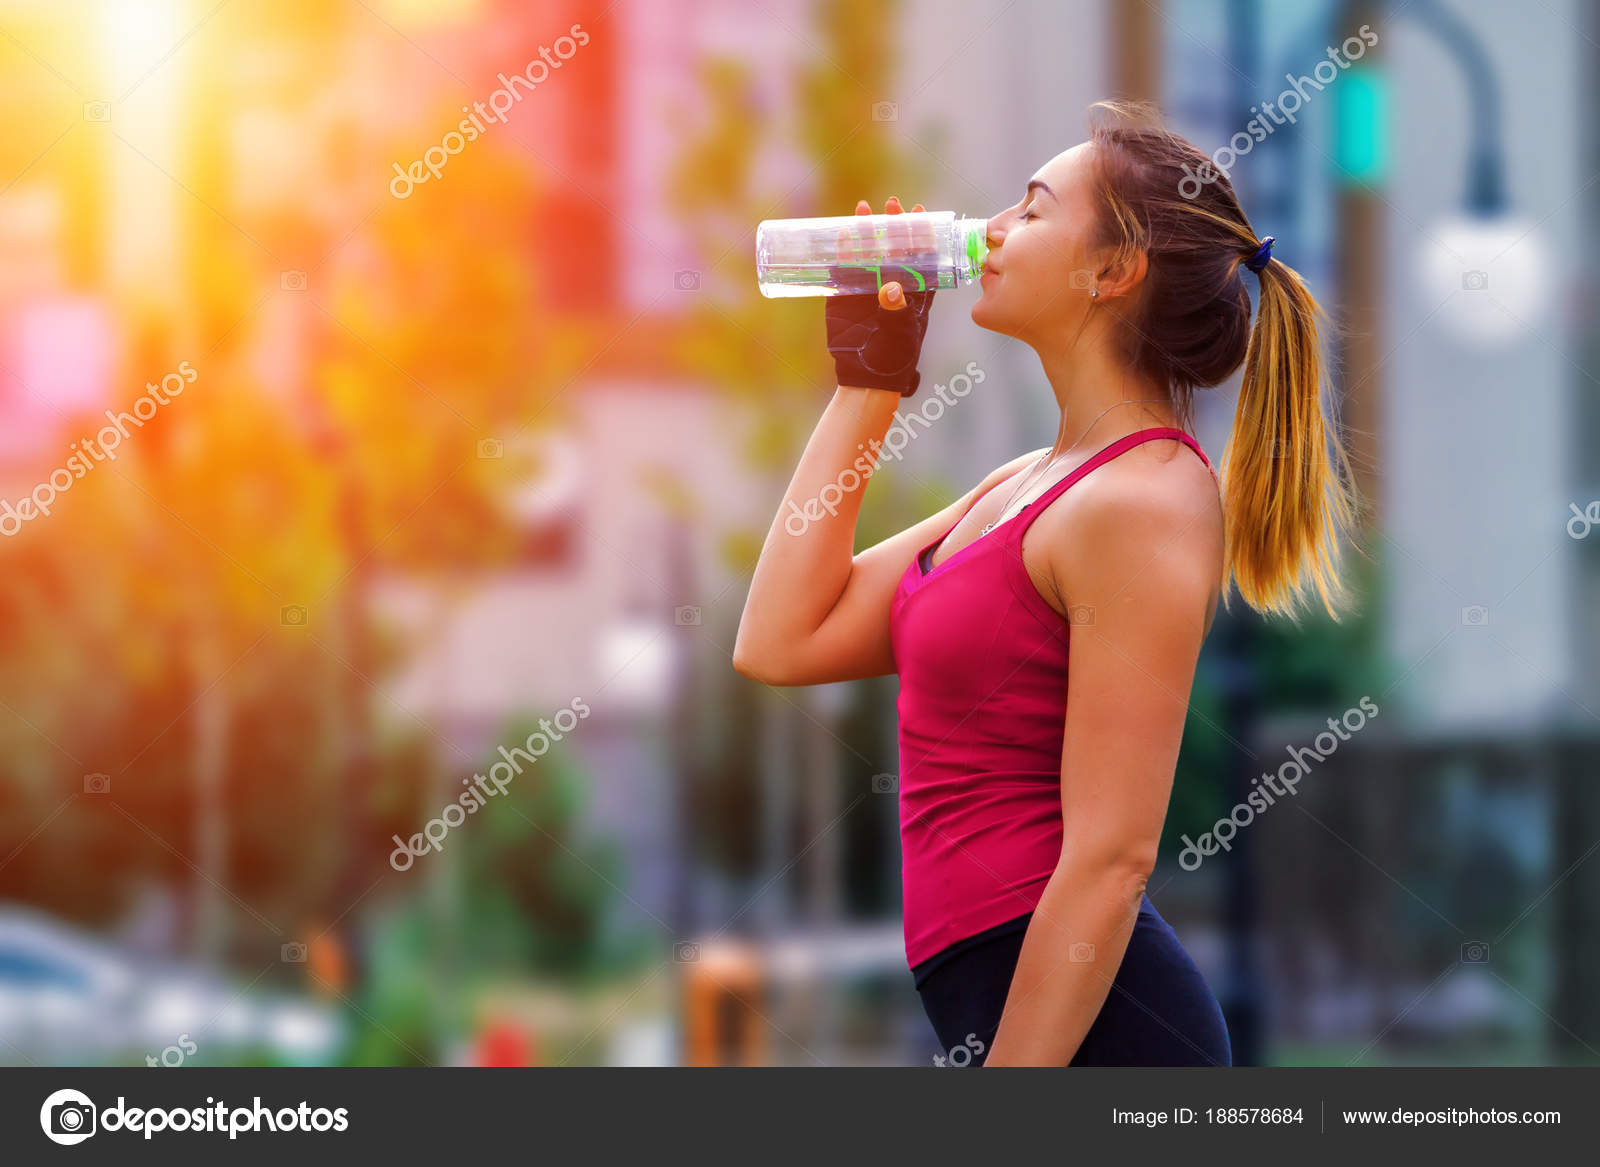 Woman in sport clothes drinking water after workout at city